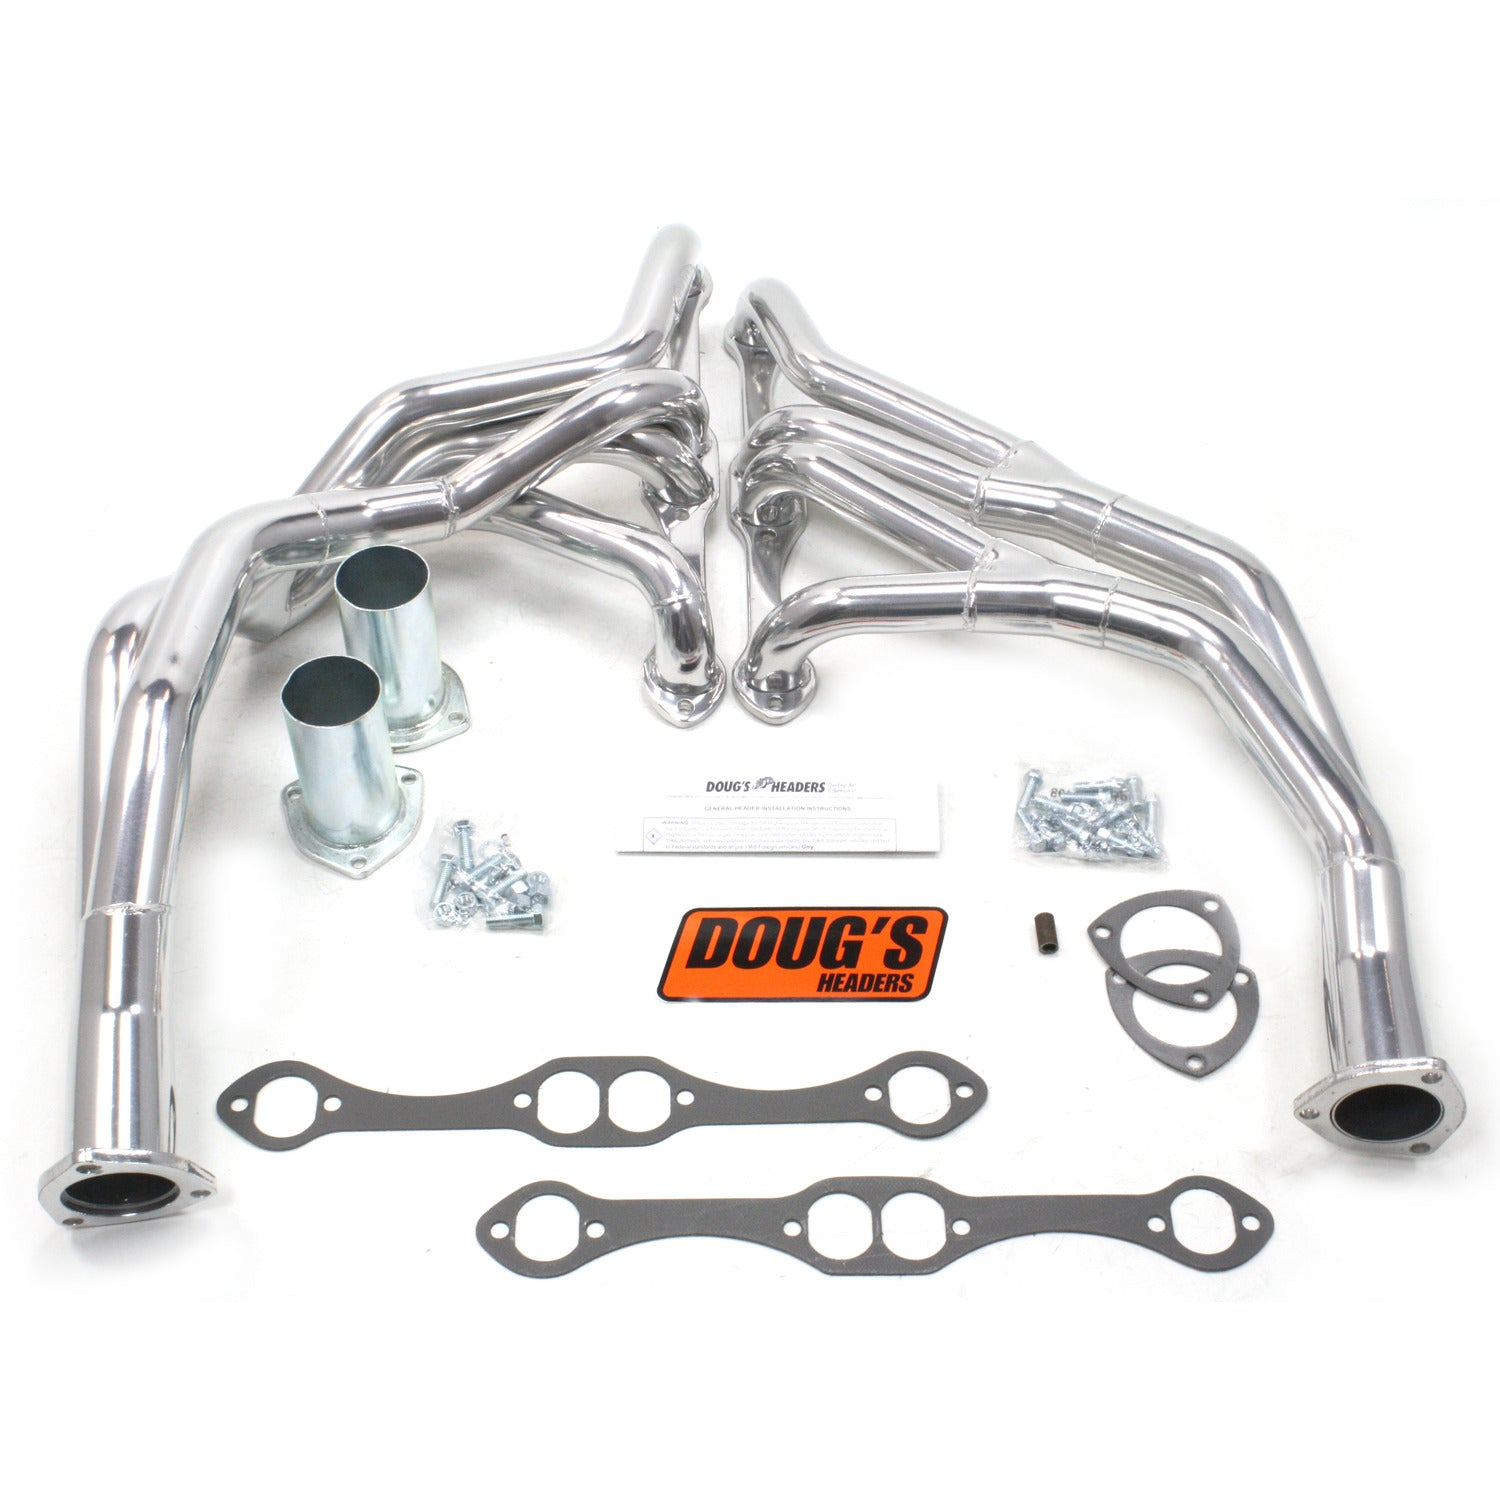 "Doug's Headers D371Y 1 5/8"" Tri-Y Header Chevrolet Truck Small Block Chevrolet 67-72 Metallic Ceramic Coating"